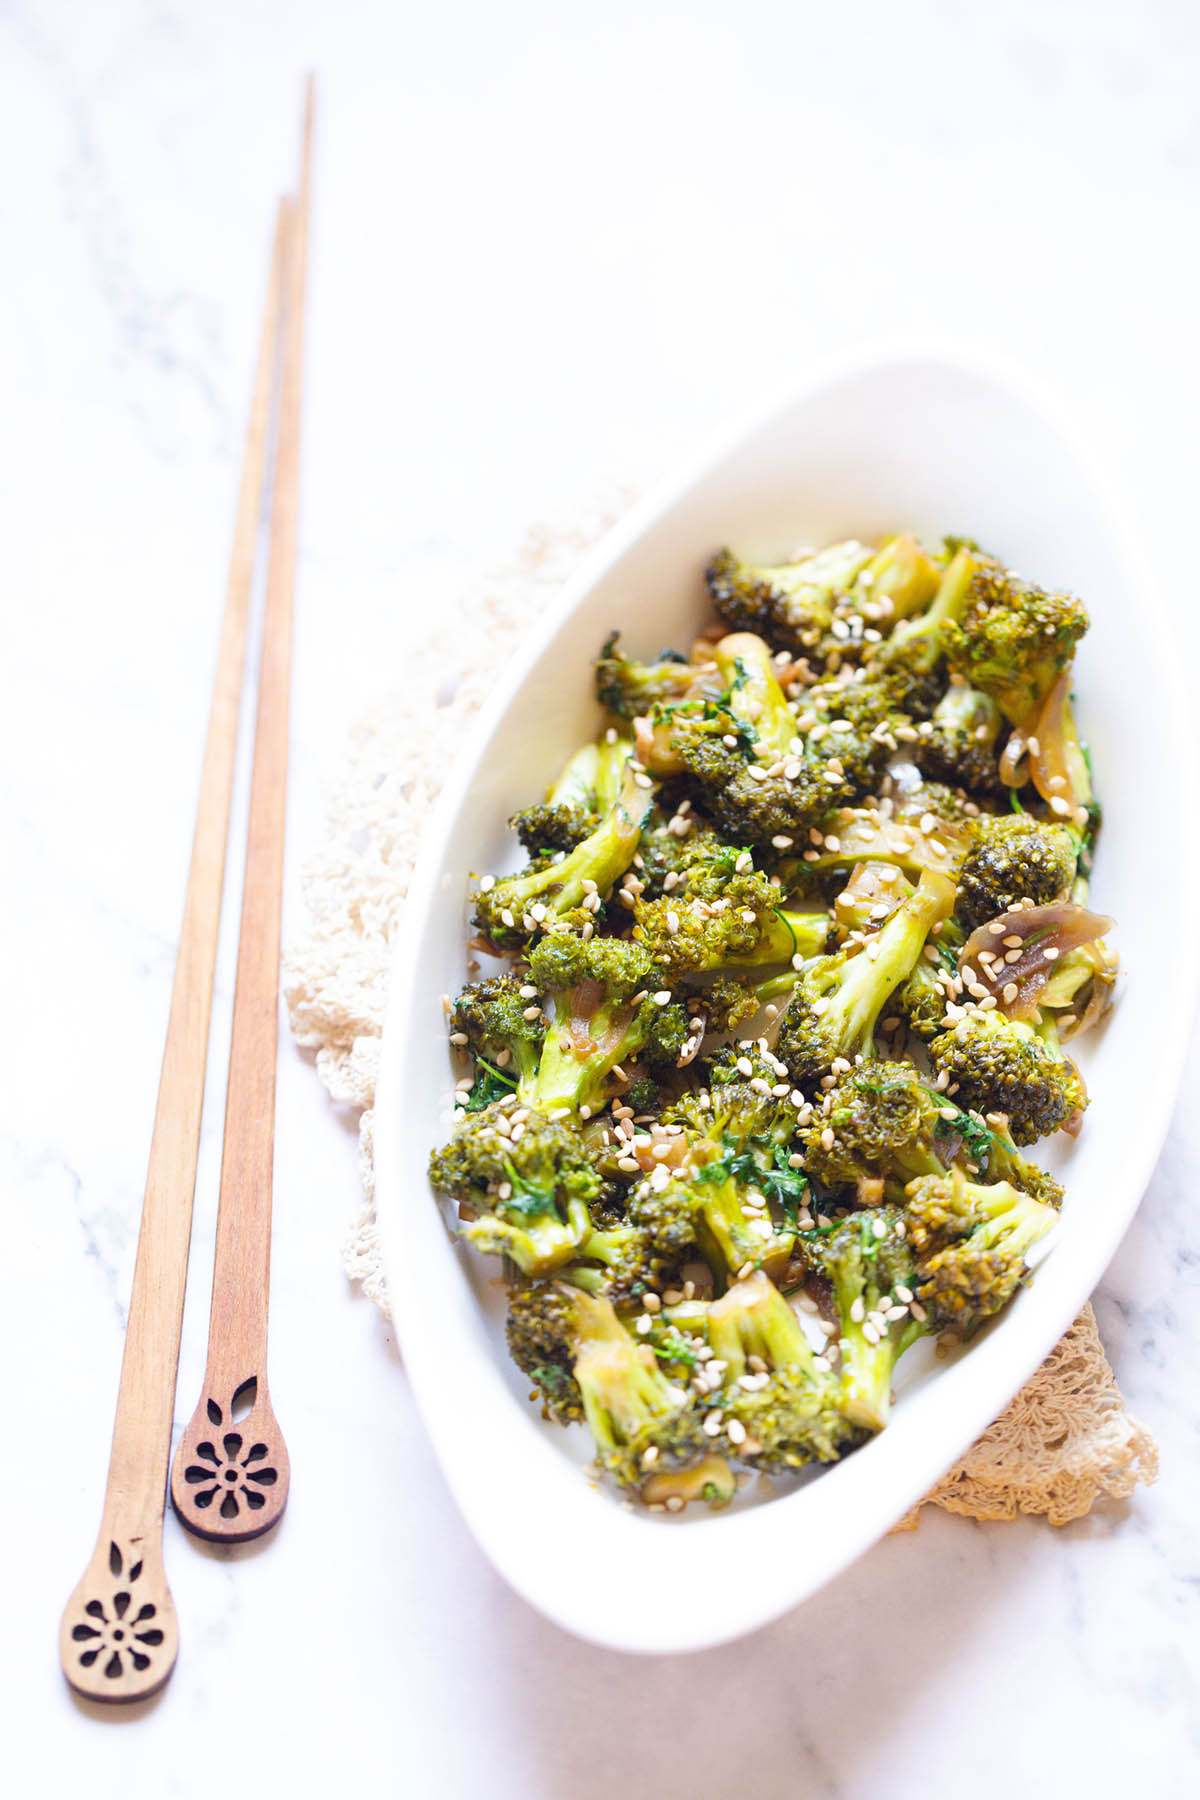 broccoli stir fry in a white oval plate with wooden chopsticks by the side